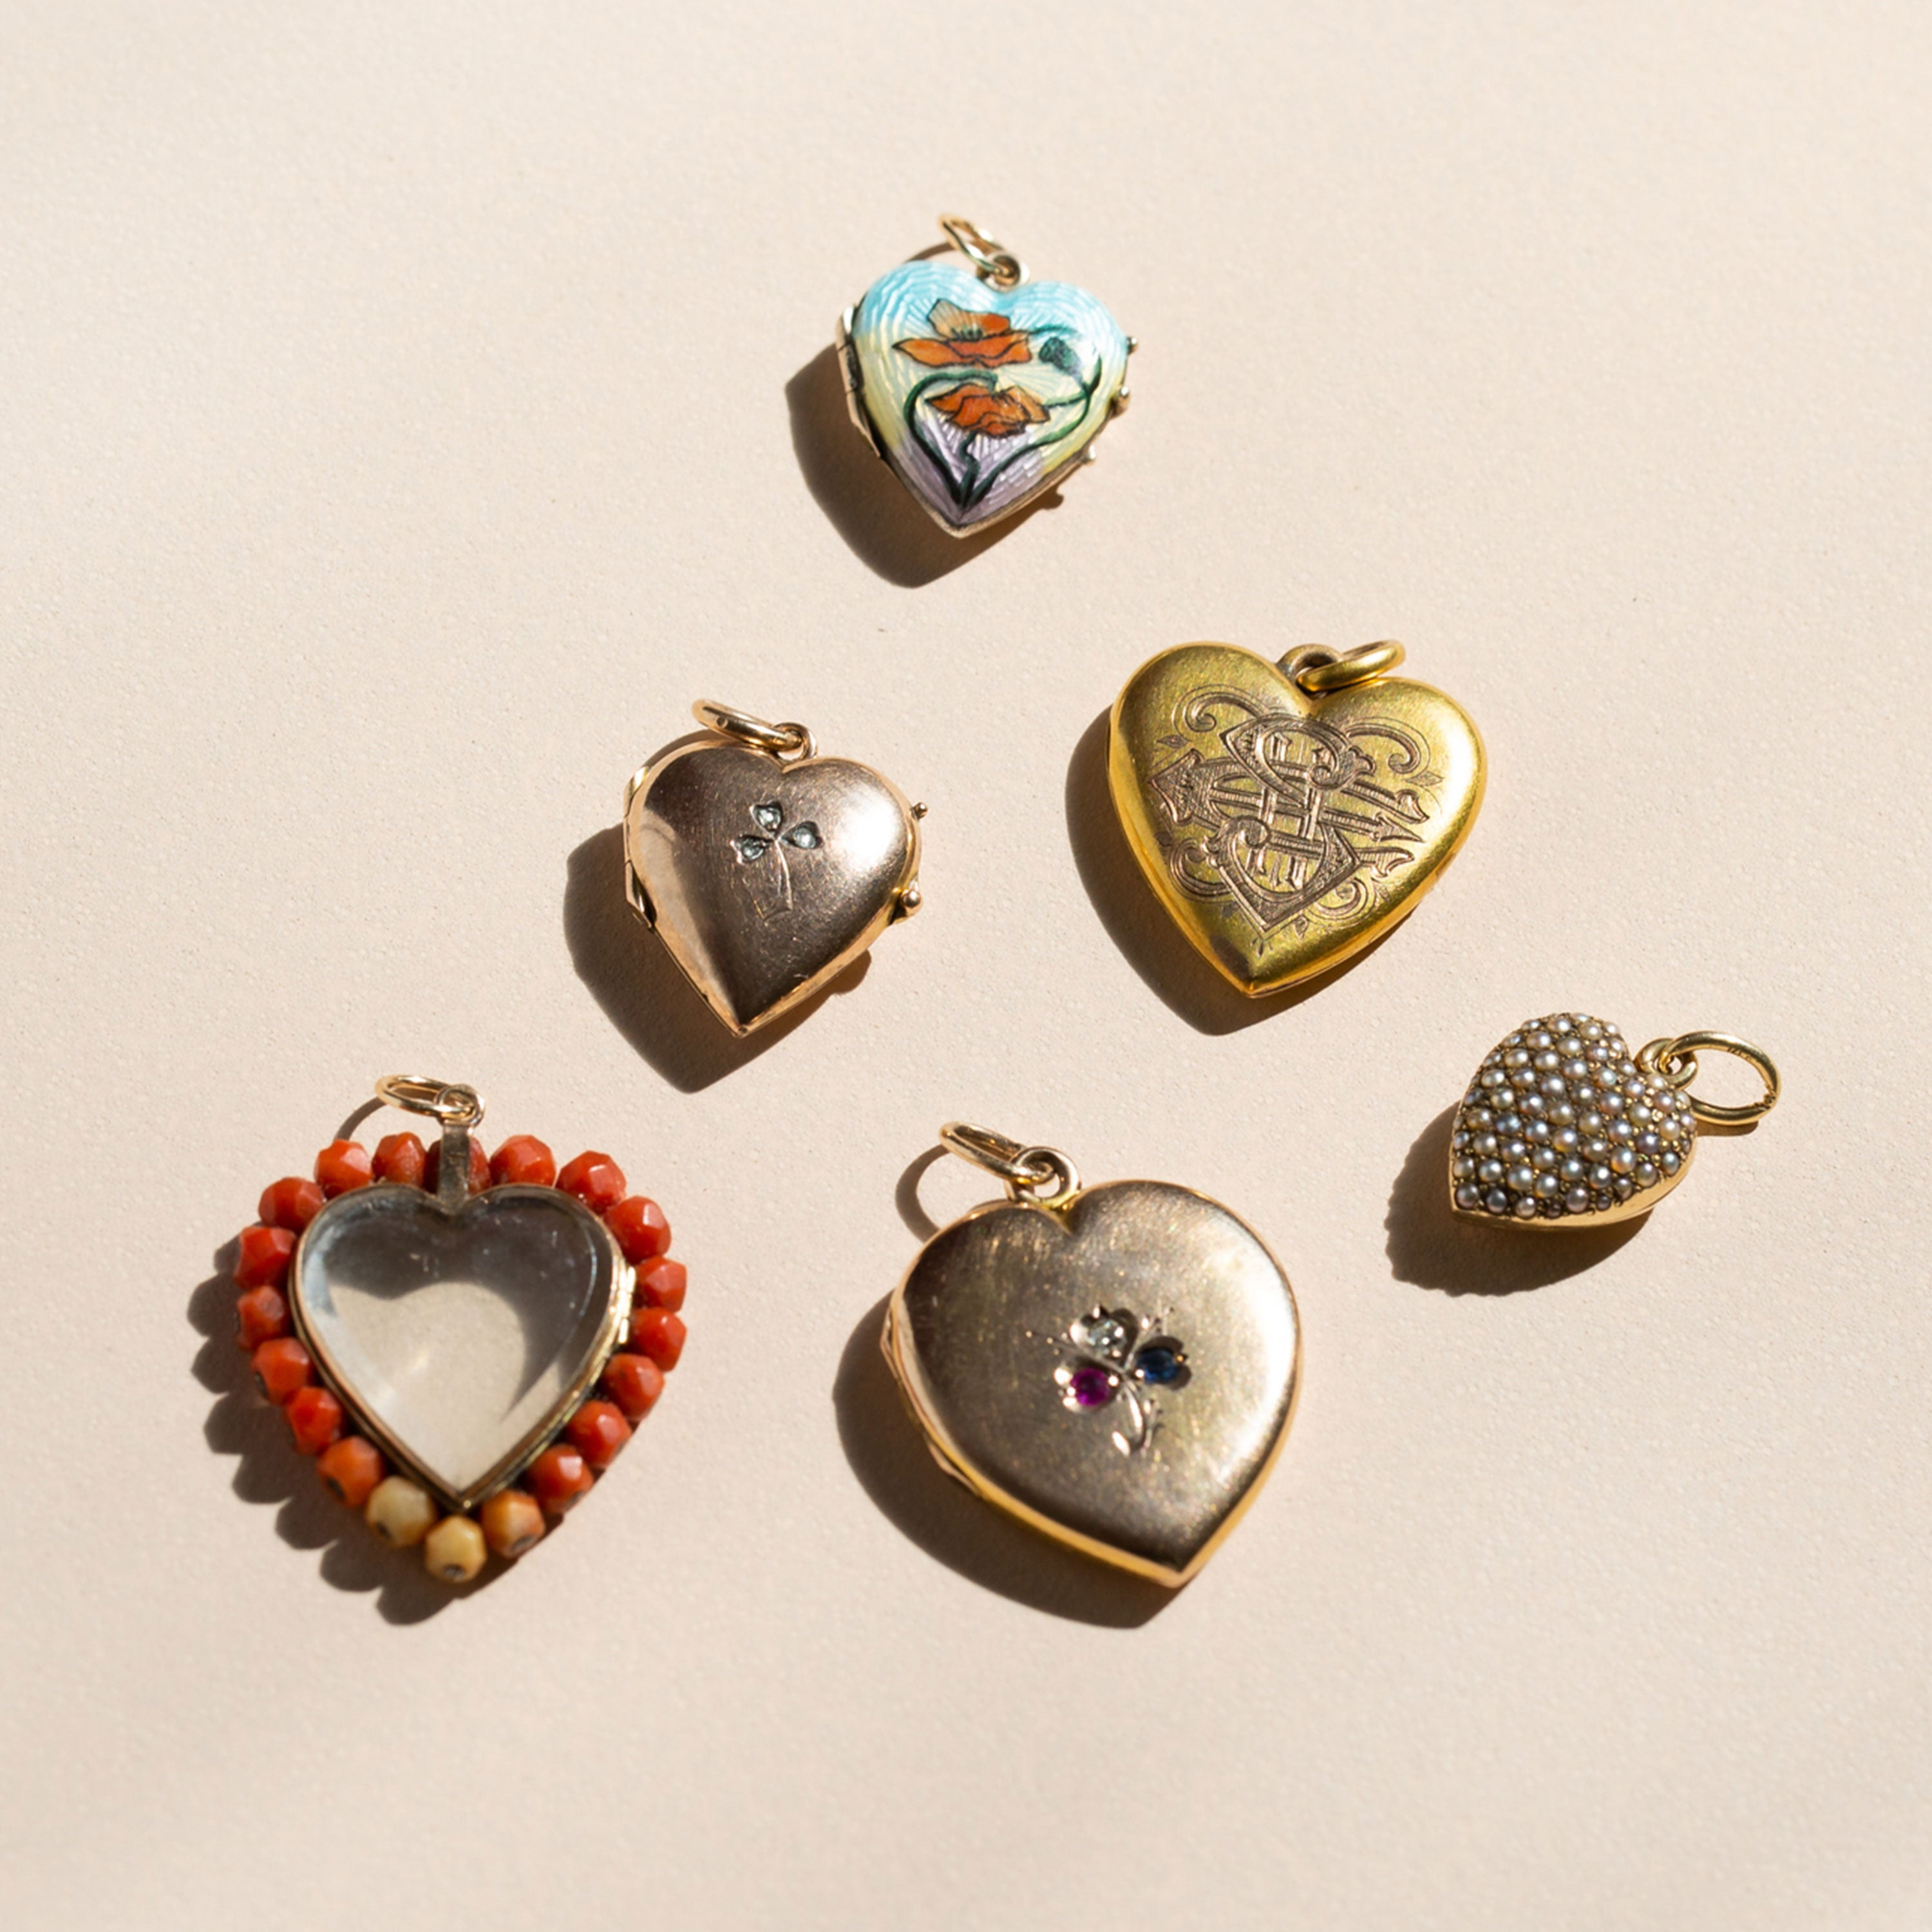 English Poppy Enamel And 9K Gold Heart Locket